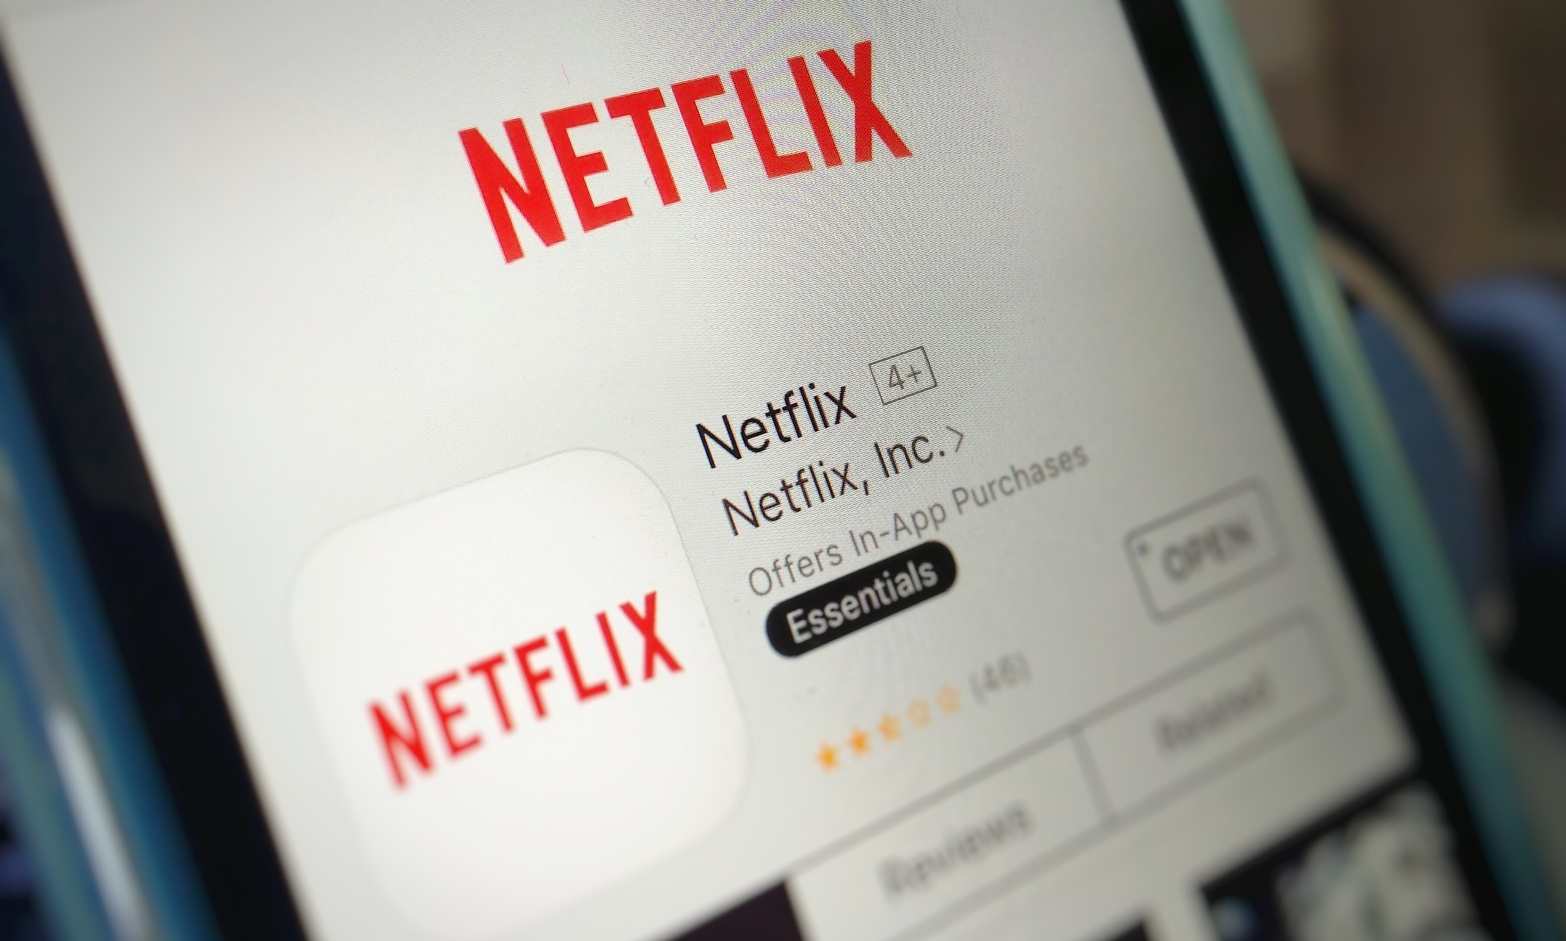 Top RSI Trades for Today: Netflix, Inc. (NASDAQ: NFLX)